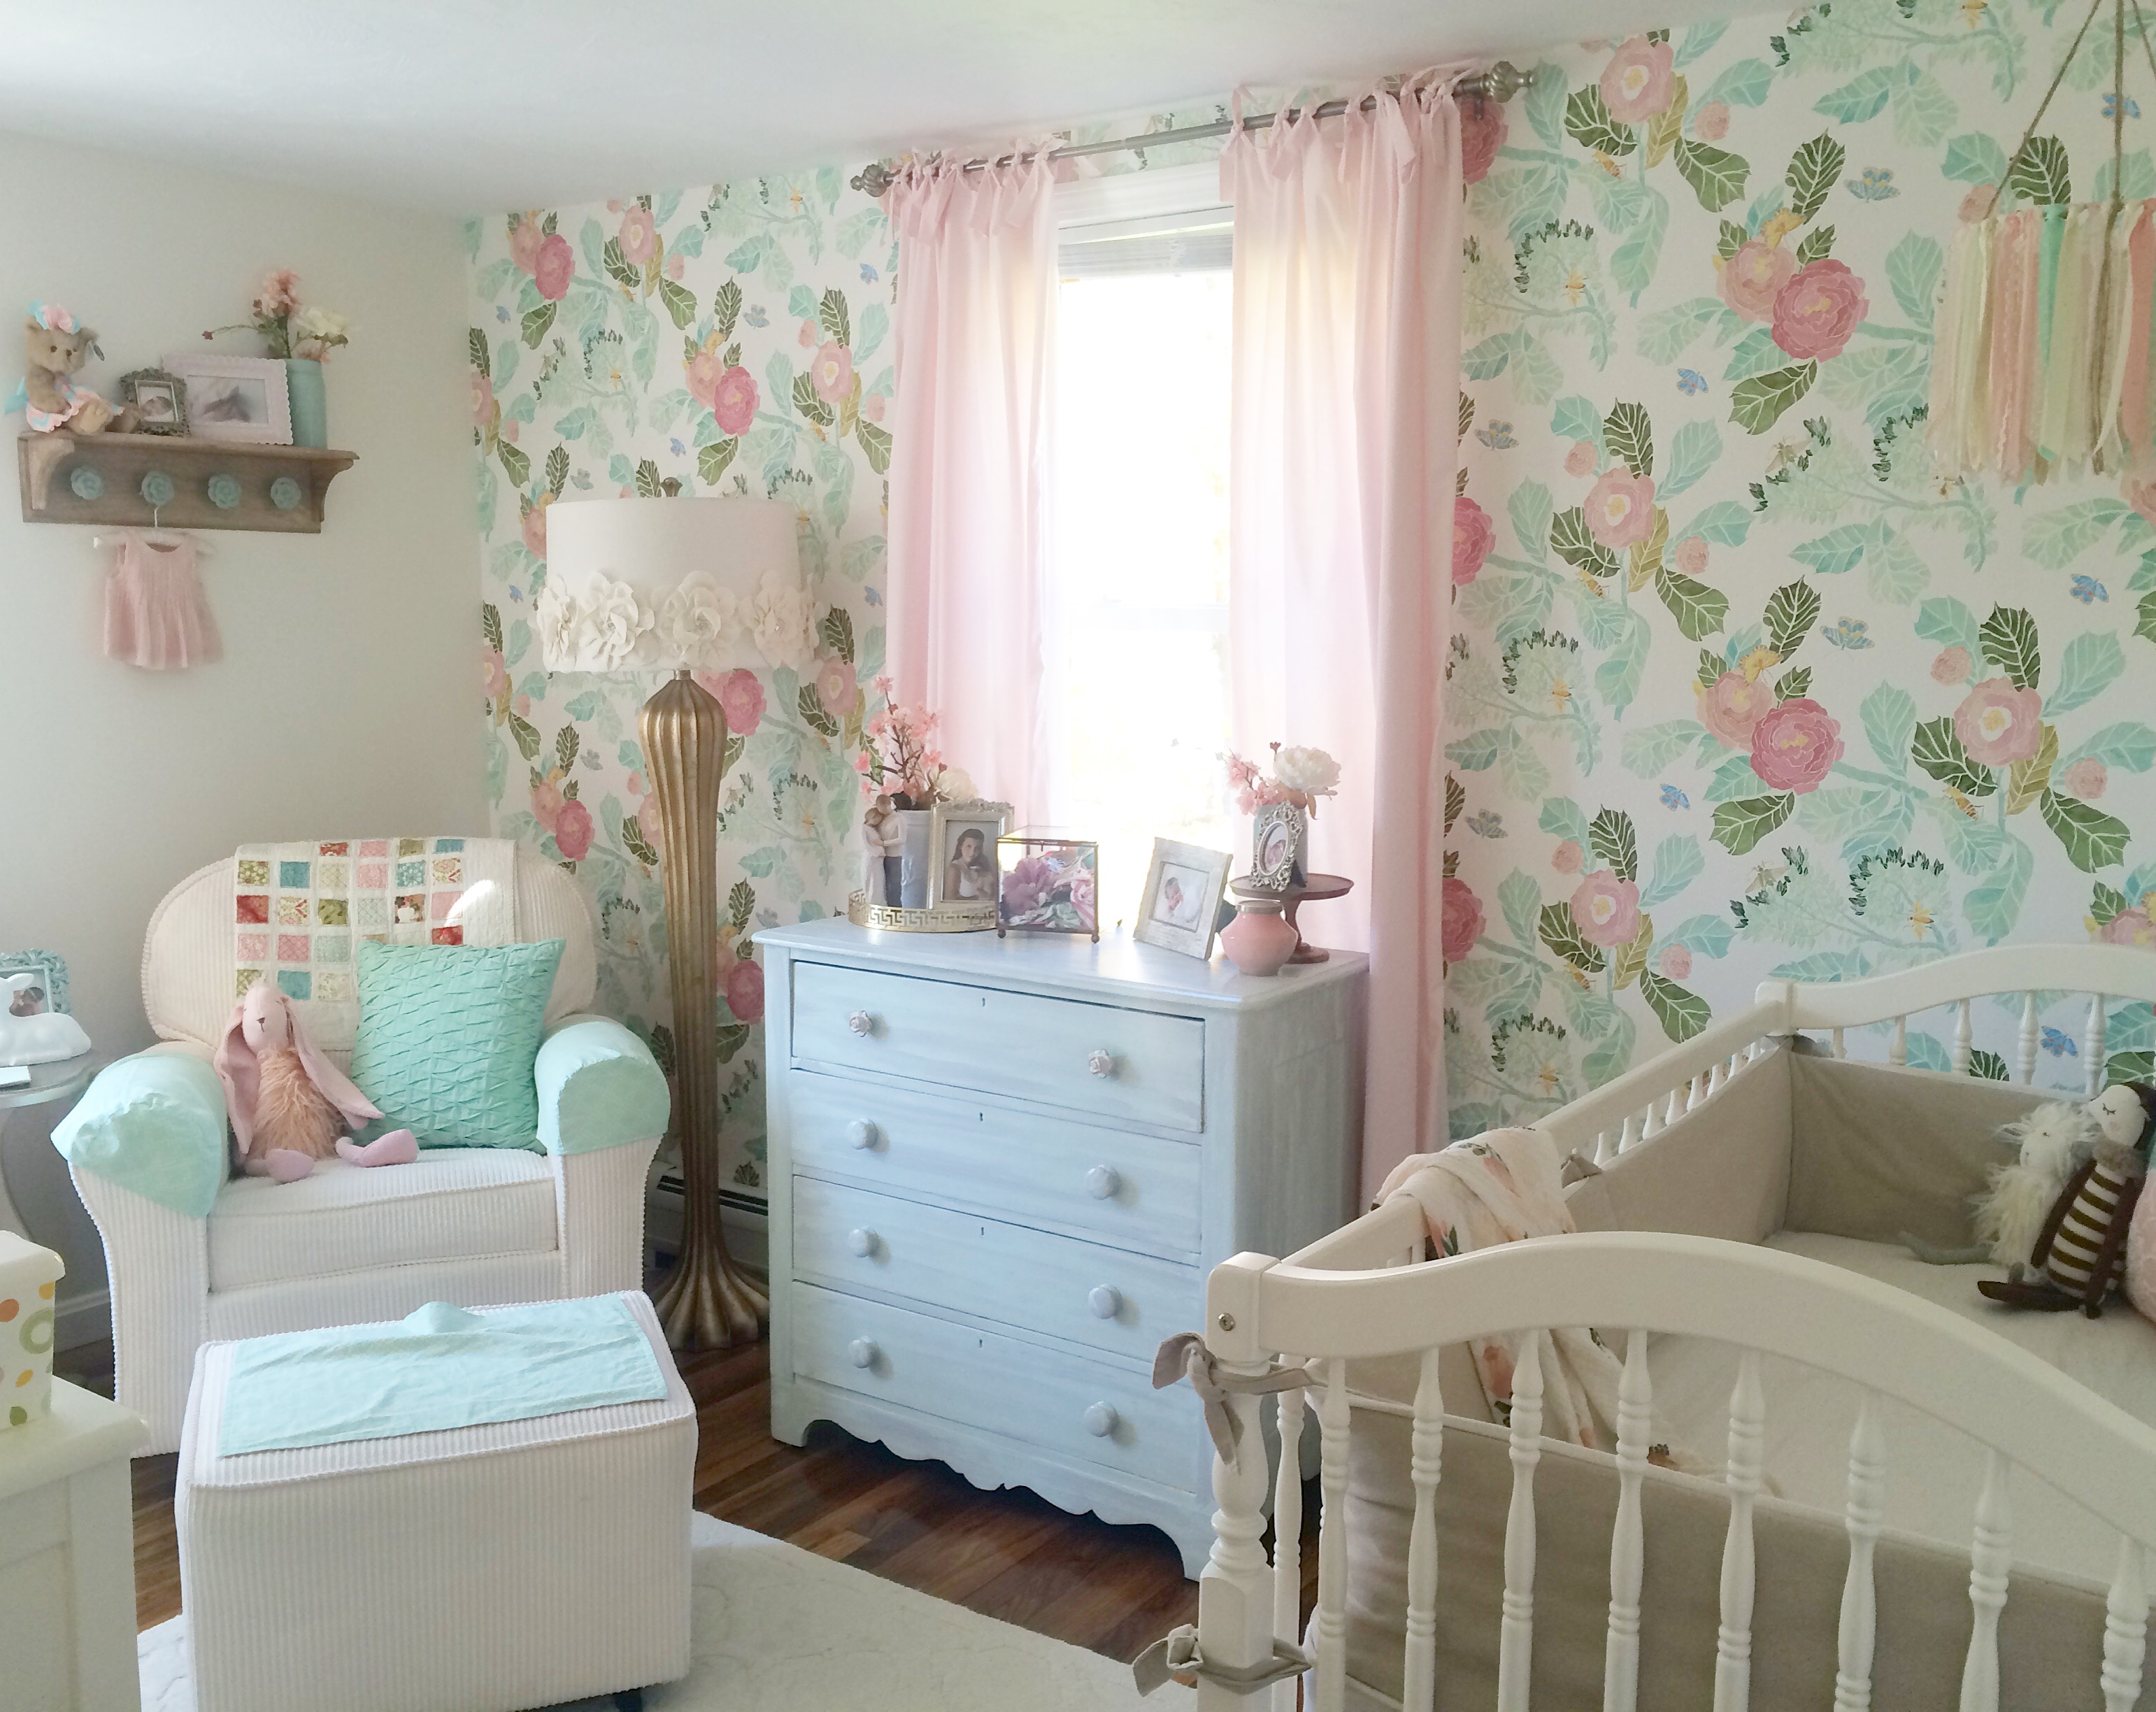 Rory lou 39 s shabby chic mint pink and gold nursery for Chic baby nursery ideas